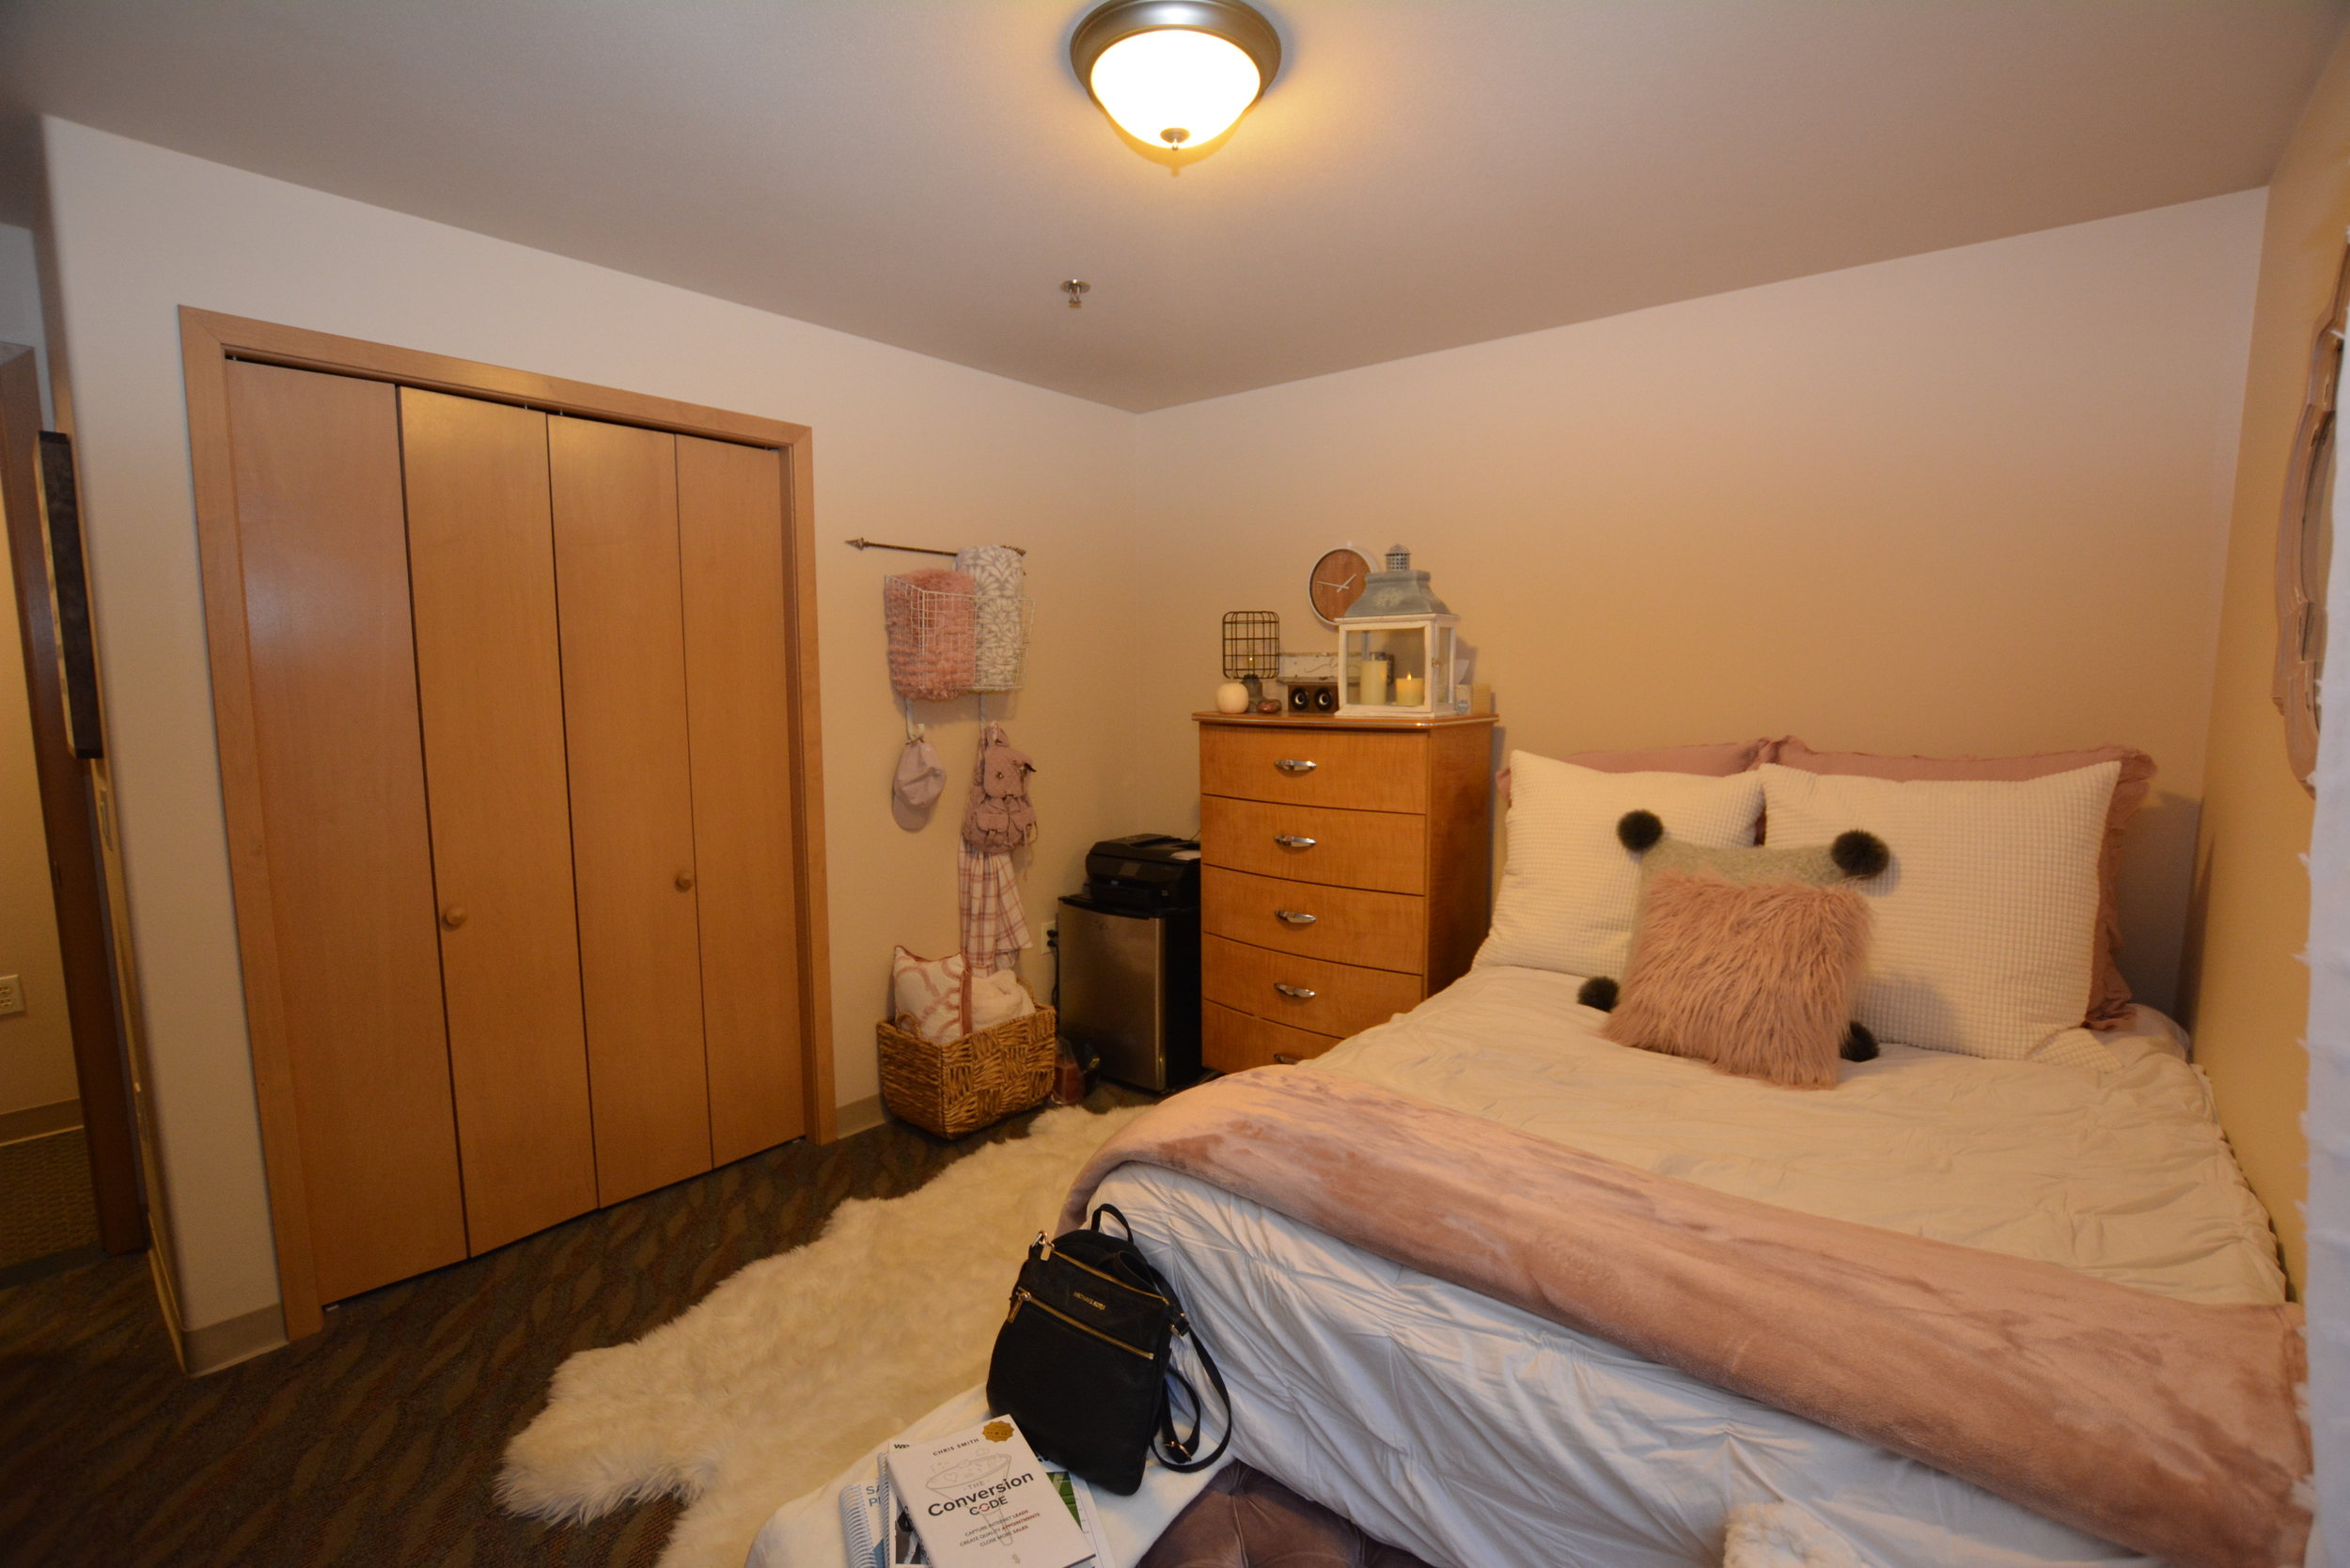 The Aberdeen Apartments feature large bedrooms